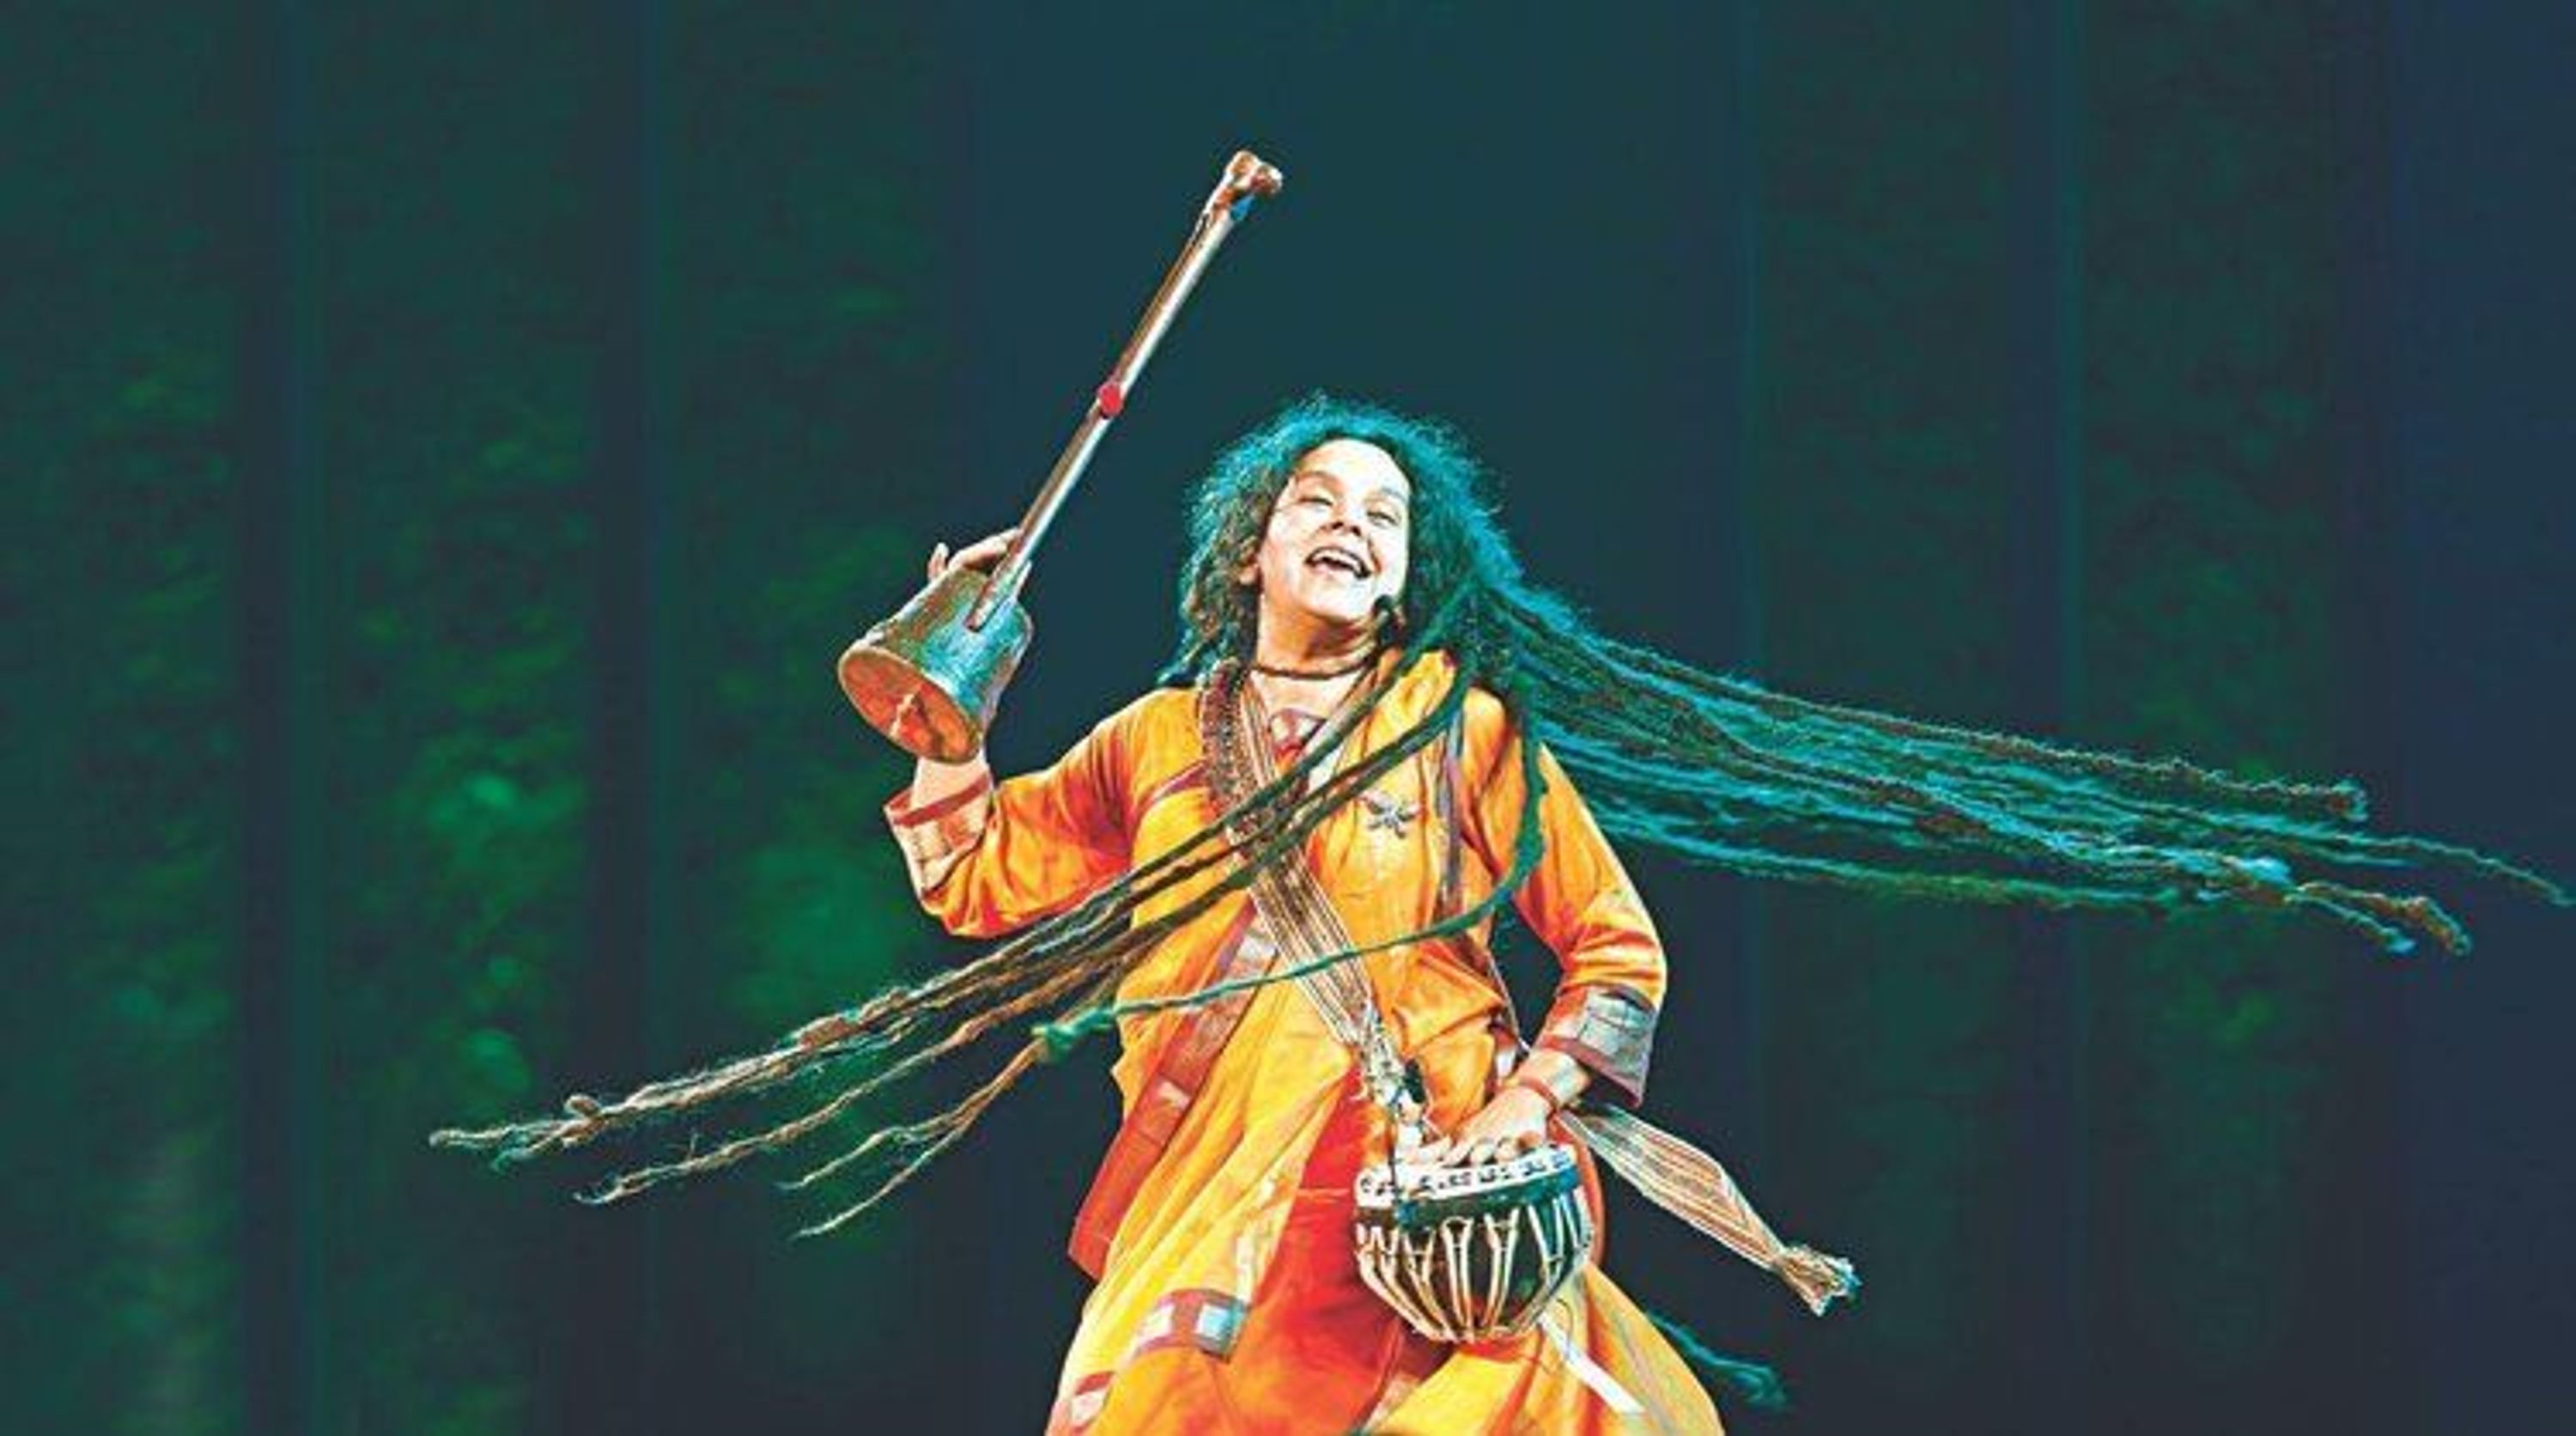 Parvathy Baul, swinging her long dreadlocks while holding a tabla